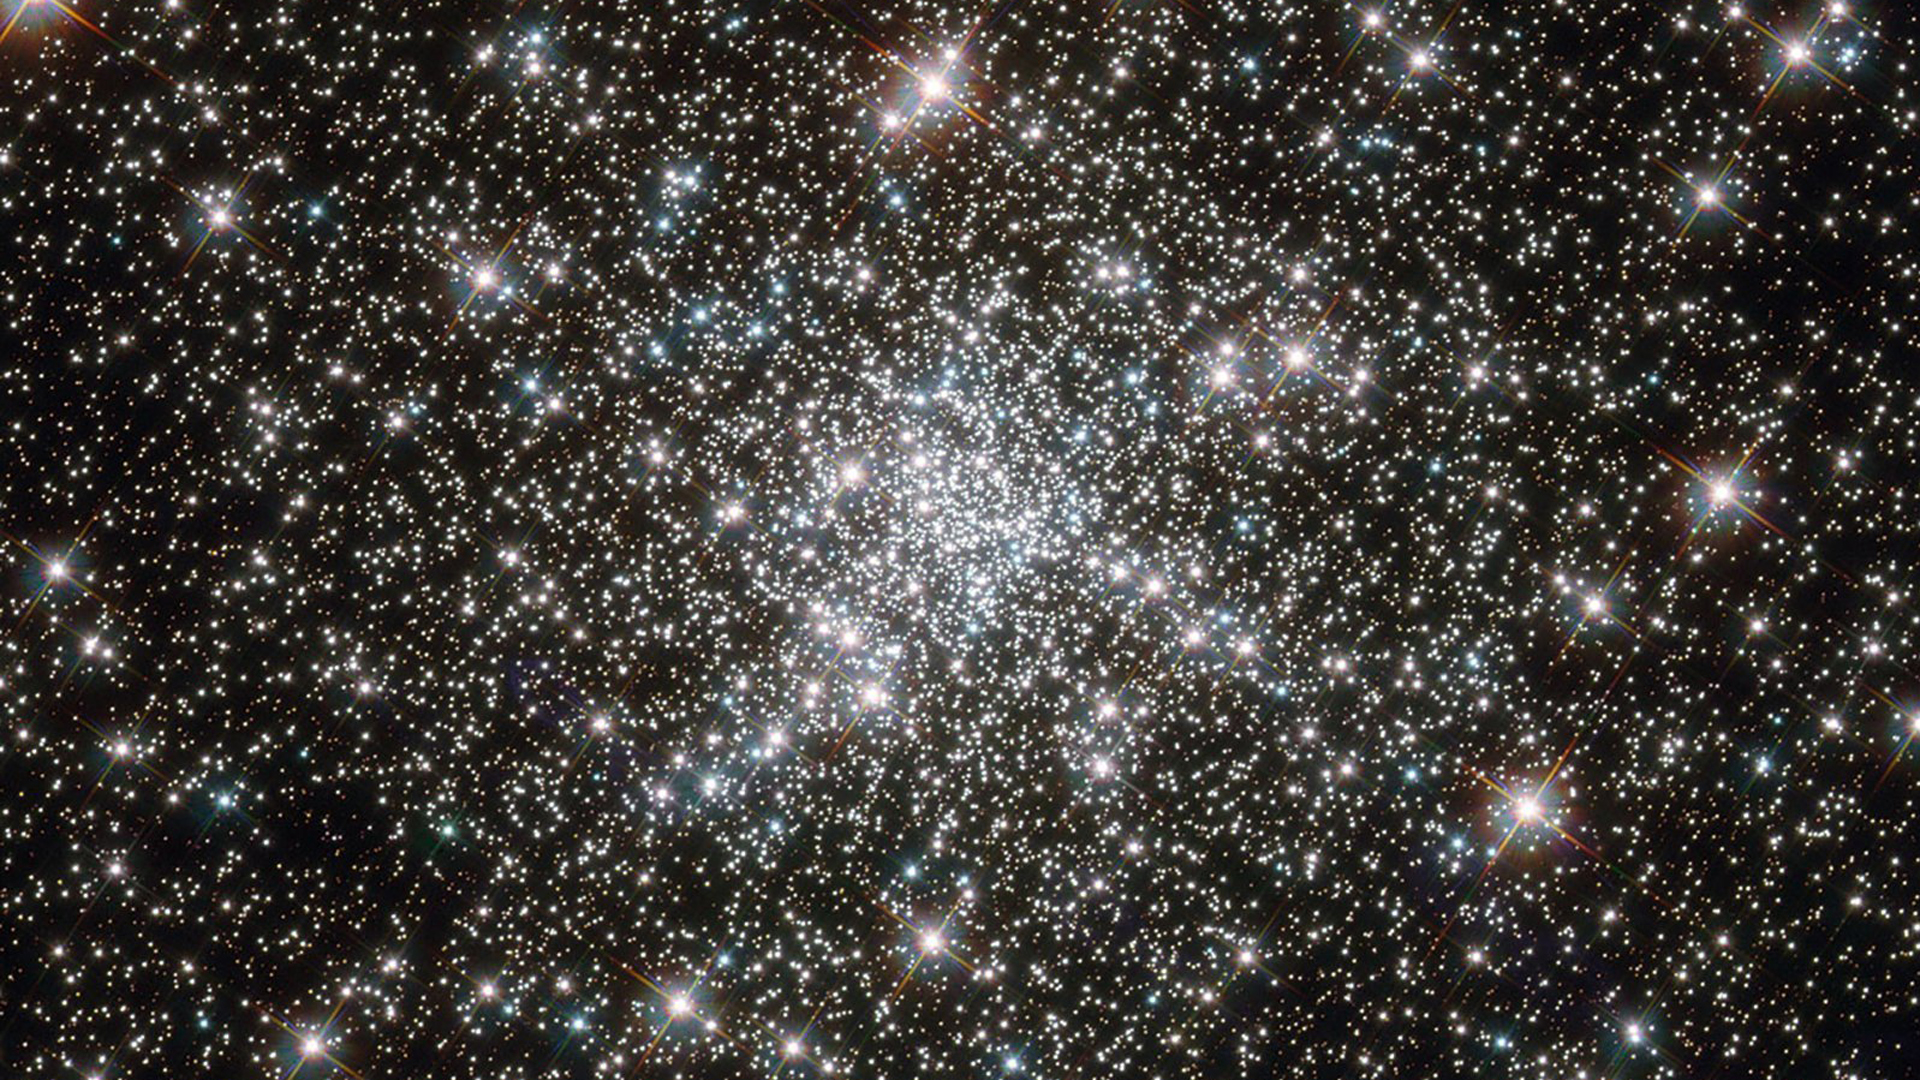 An image of a globular cluster of stars by the Hubble Space Telescope. (Credit: NASA)